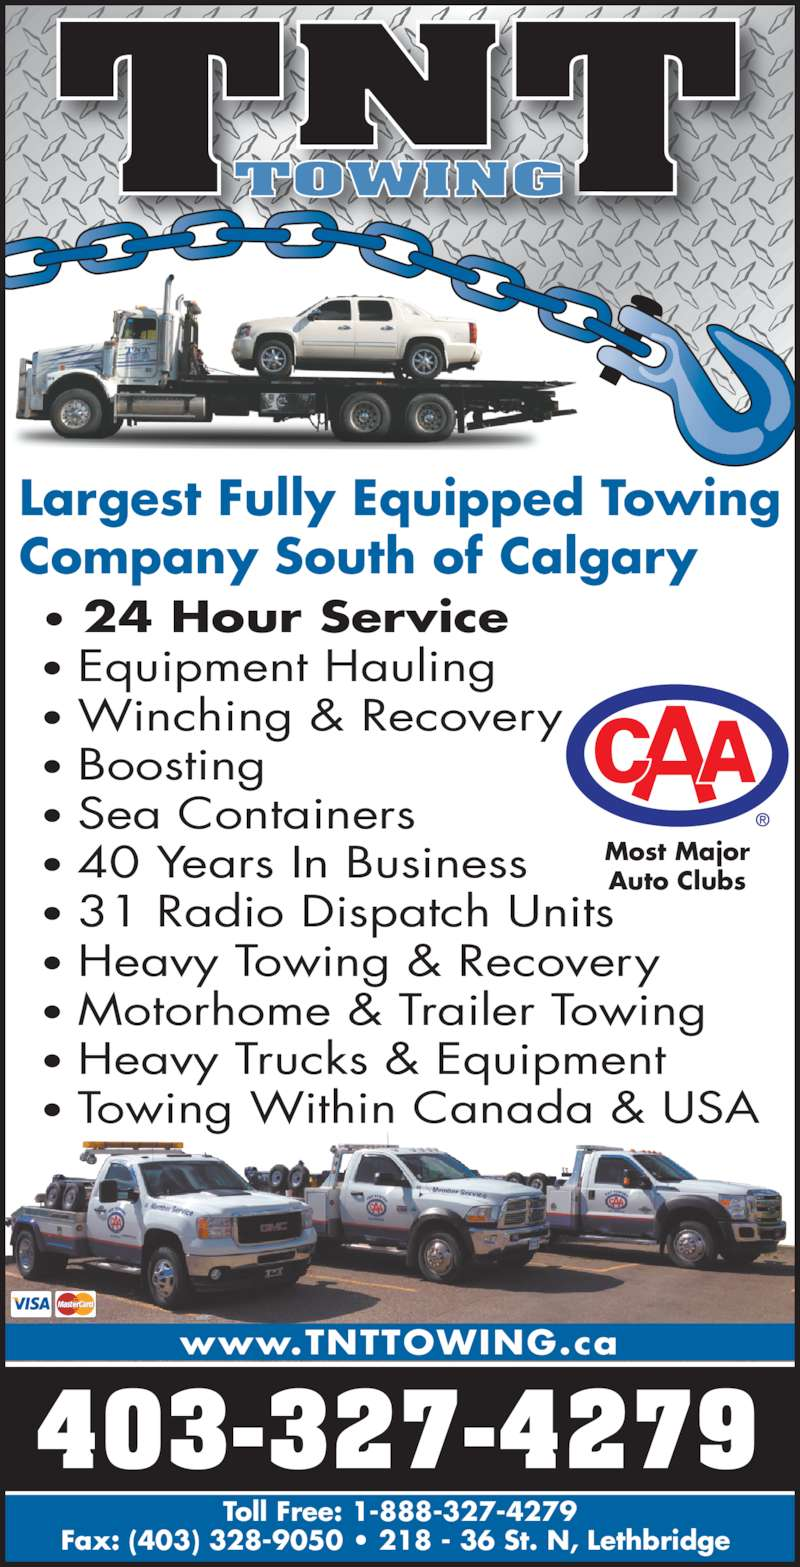 TNT Towing and Salvage Disposal (4033274279) - Display Ad - TNTTOWING 403-327-4279 Toll Free: 1-888-327-4279 Fax: (403) 328-9050 ? 218 - 36 St. N, Lethbridge  www.TNTTOWING.ca Most Major Auto Clubs Largest Fully Equipped Towing Company South of Calgary ? 24 Hour Service ? Equipment Hauling ? Winching & Recovery ? Boosting ? Sea Containers ? 40 Years In Business ? 31 Radio Dispatch Units ? Motorhome & Trailer Towing ? Heavy Trucks & Equipment ? Towing Within Canada & USA ? Heavy Towing & Recovery